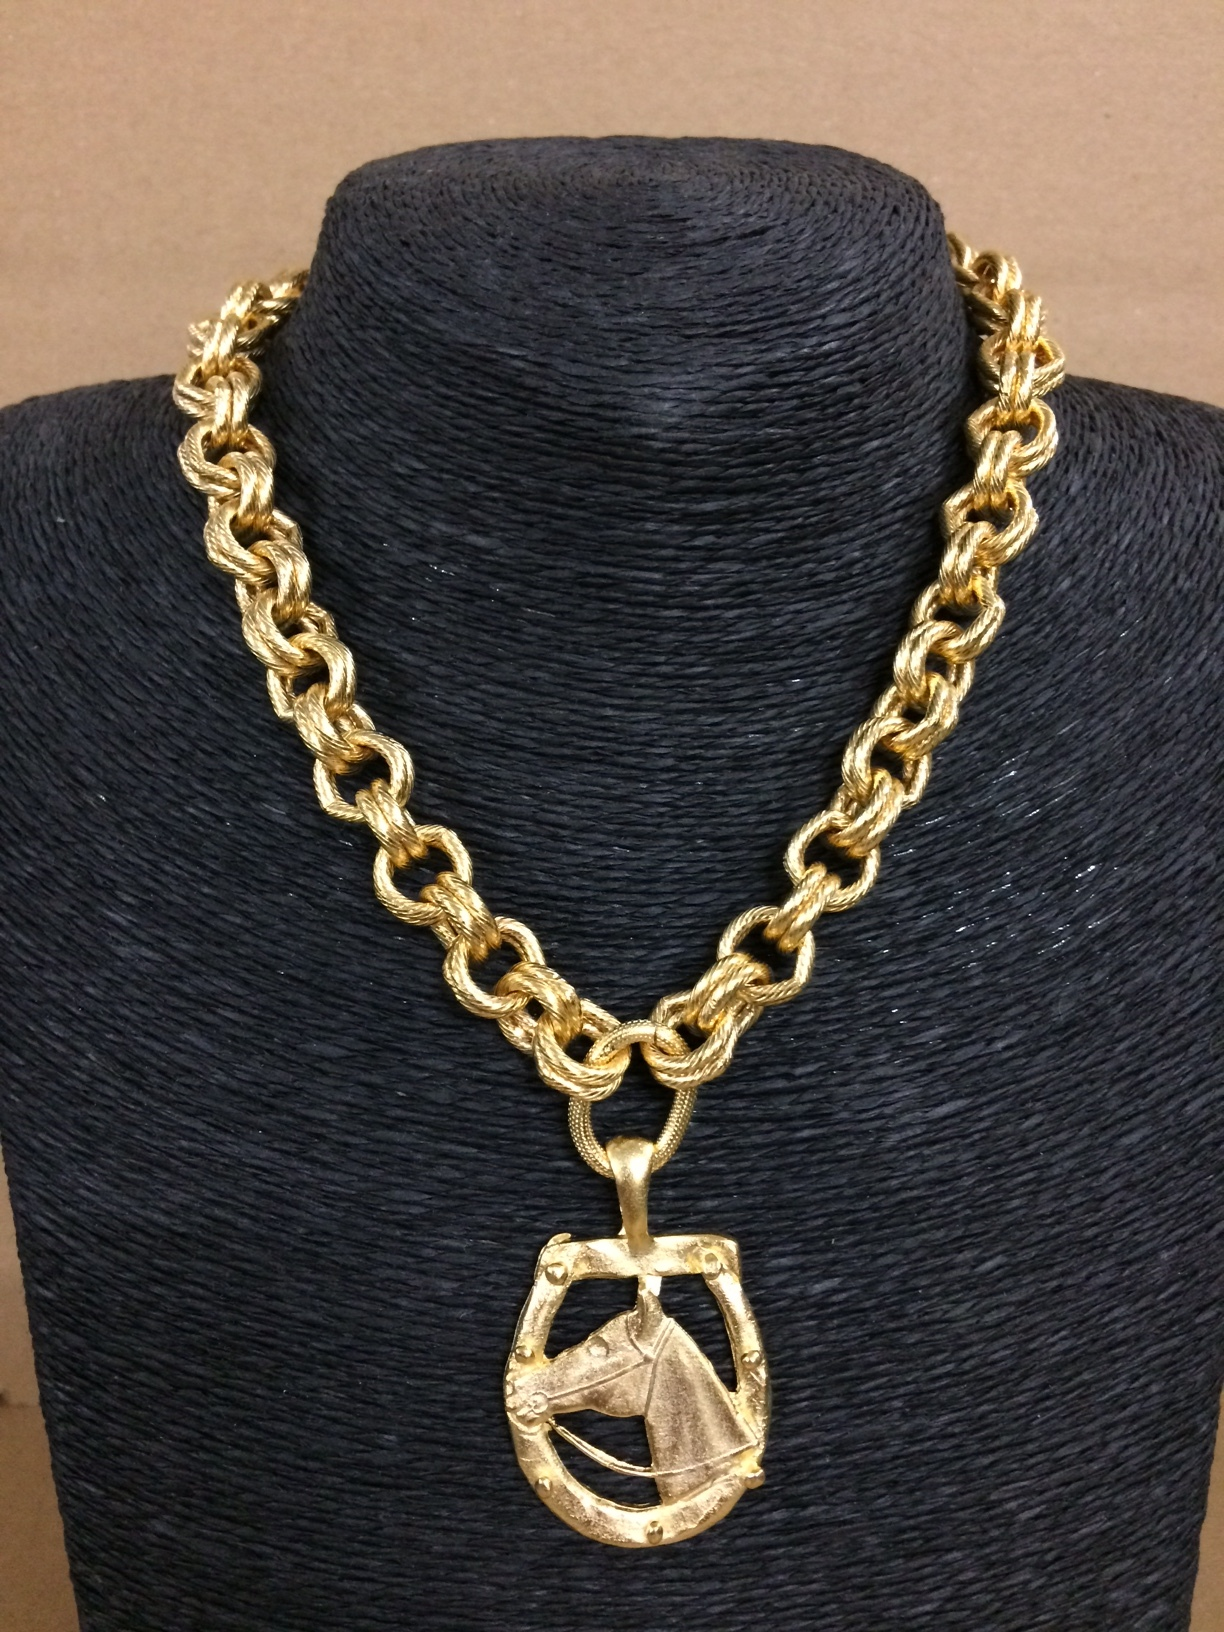 susan-shaw-equestrian-necklace-gold-horseshoe